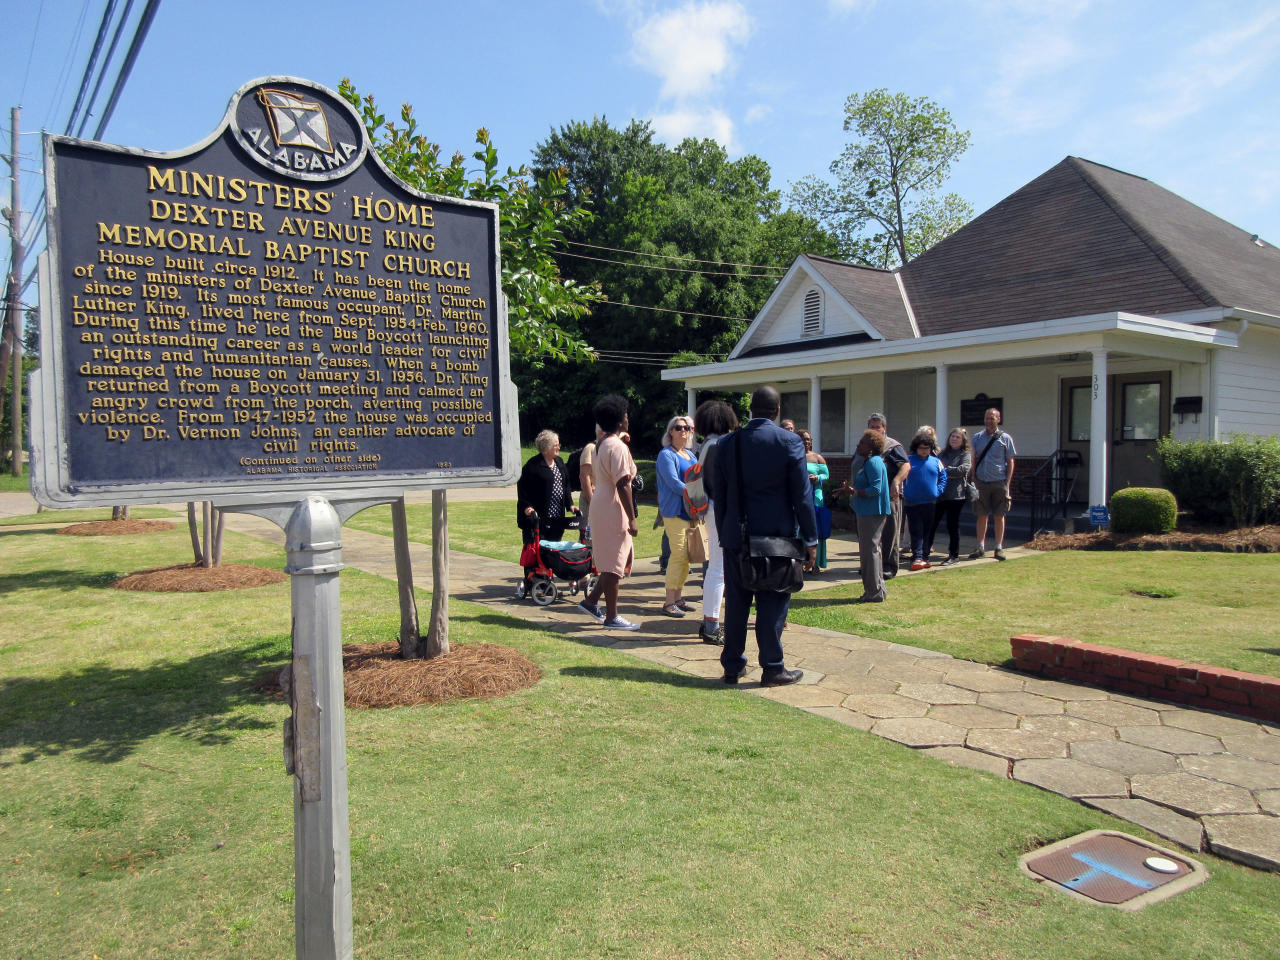 In this April 27, 2018 photo, a tour group gathers in Montgomery, Ala., on the street where Martin Luther King, Jr. lived from 1954-1960 while serving as minister of the Dexter Avenue King Memorial Baptist Church. During that time, King led the Montgomery bus boycott that was sparked by the arrest of Rosa Parks. That protest resulted in a U.S. Supreme Court ruling that segregation on public buses was unconstitutional. (AP Photo/Beth J. Harpaz)